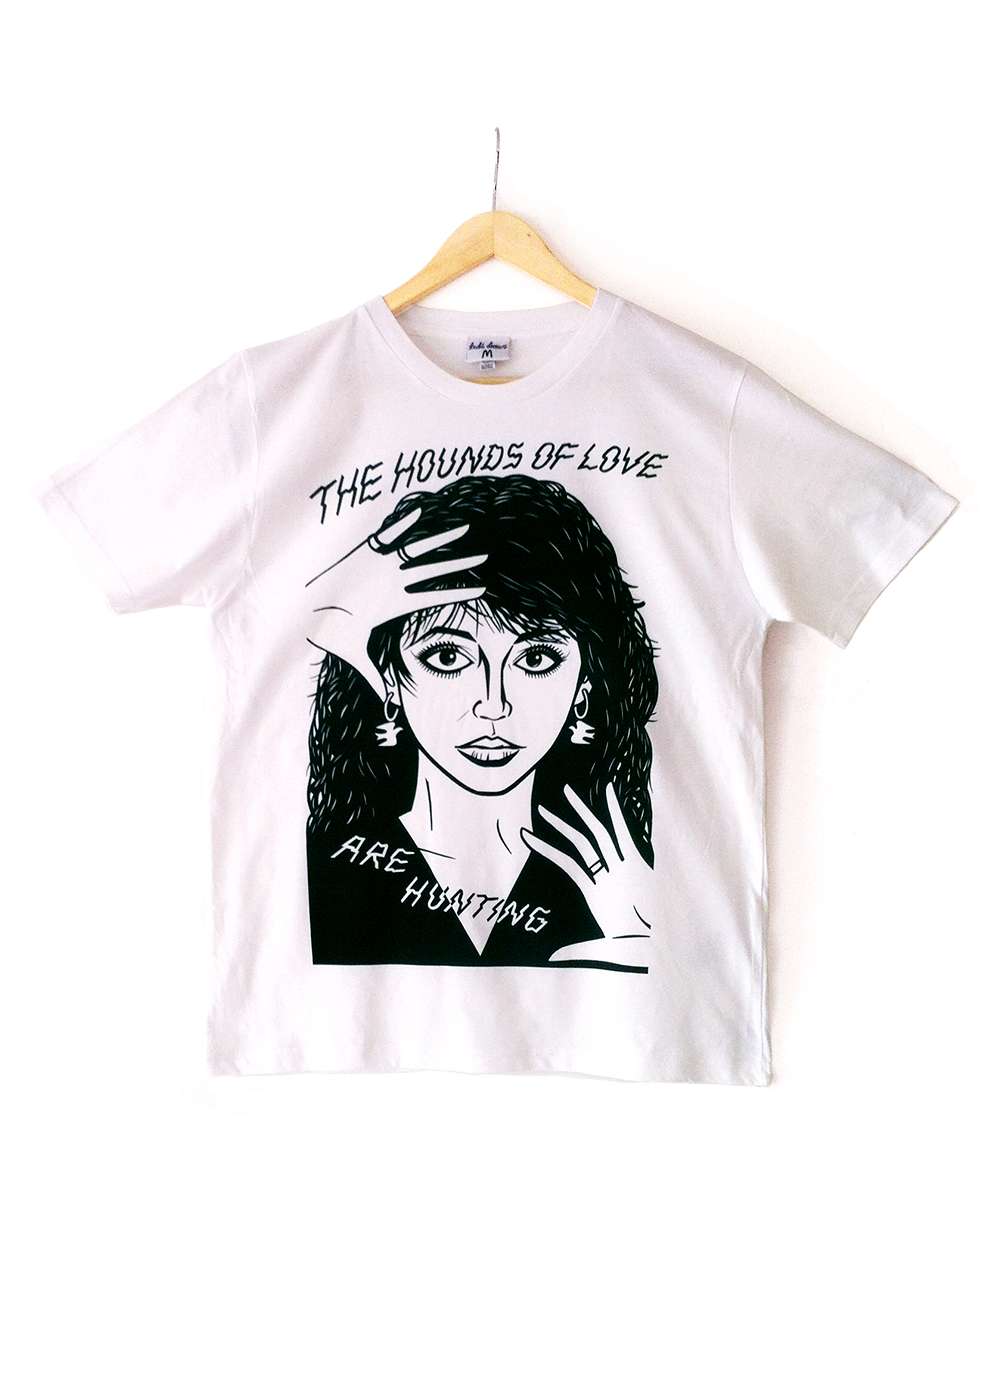 Kate+Bush+t+shirt.jpg